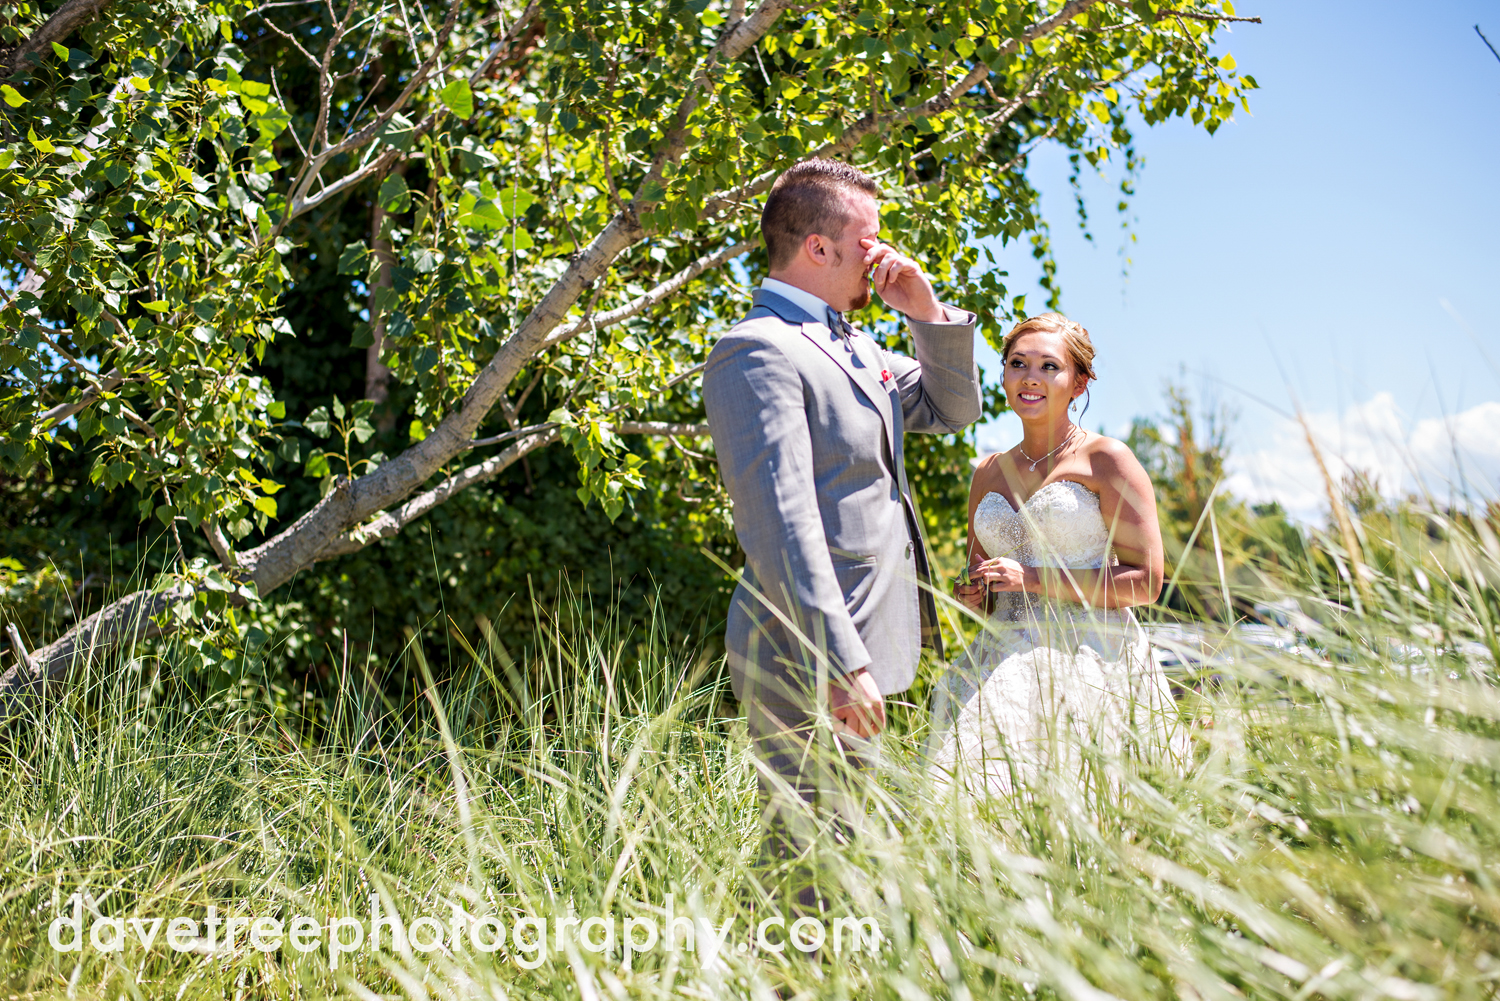 veranda_wedding_photographer_st_joseph_wedding_145.jpg